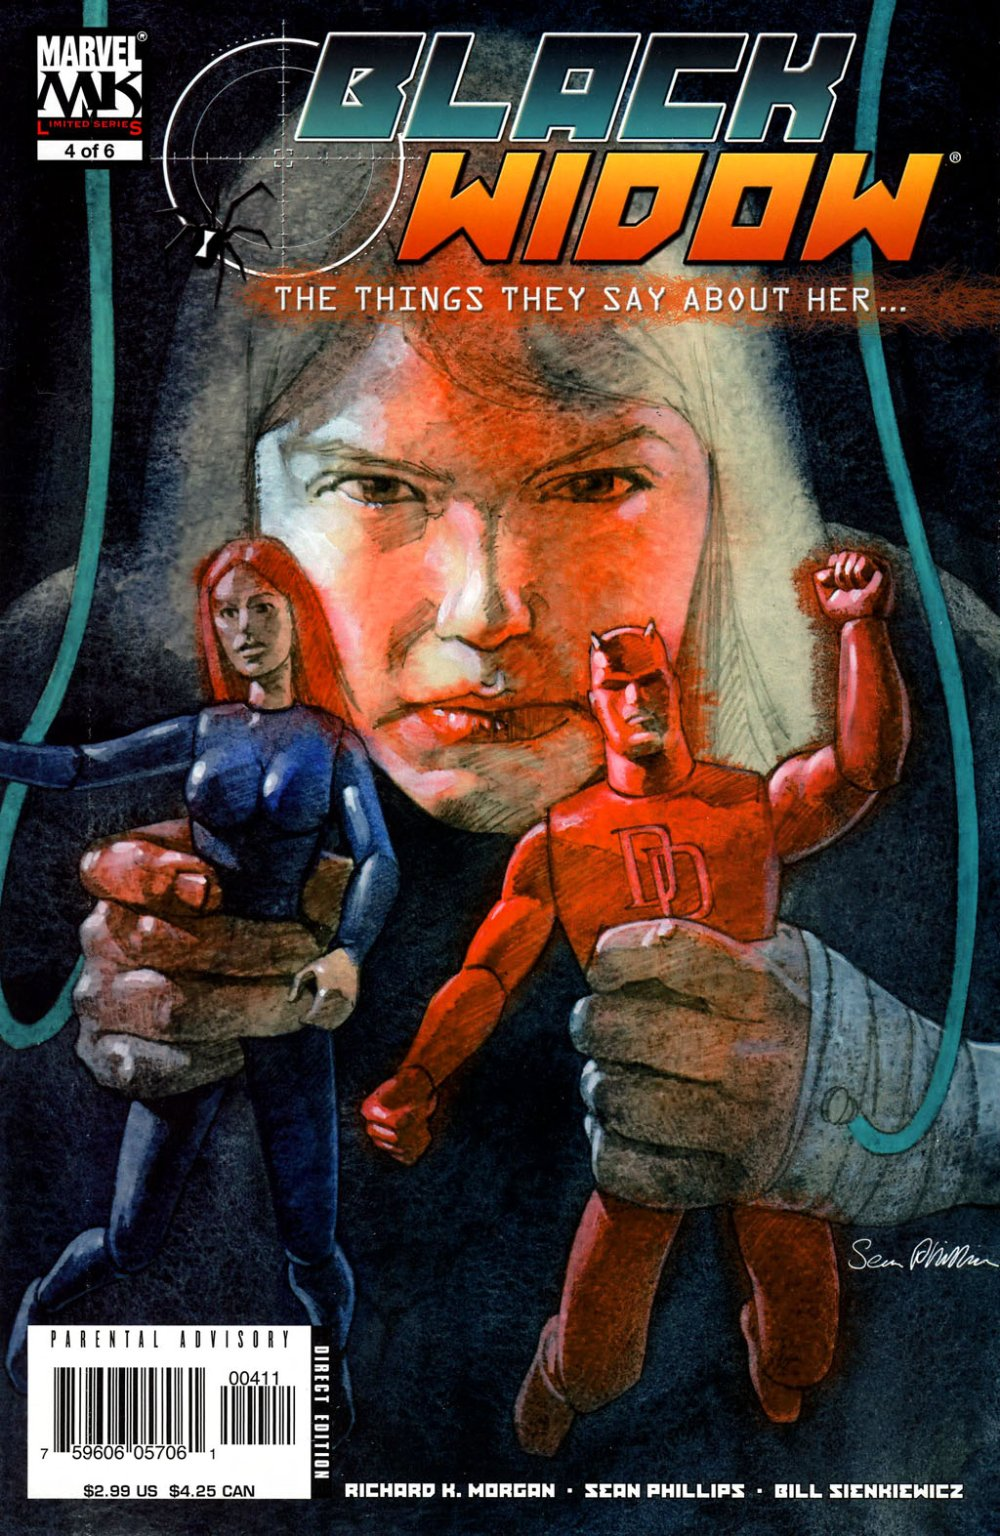 Black Widow- The Things They Say About Her [Marvel] Mini 1 0004.JPG